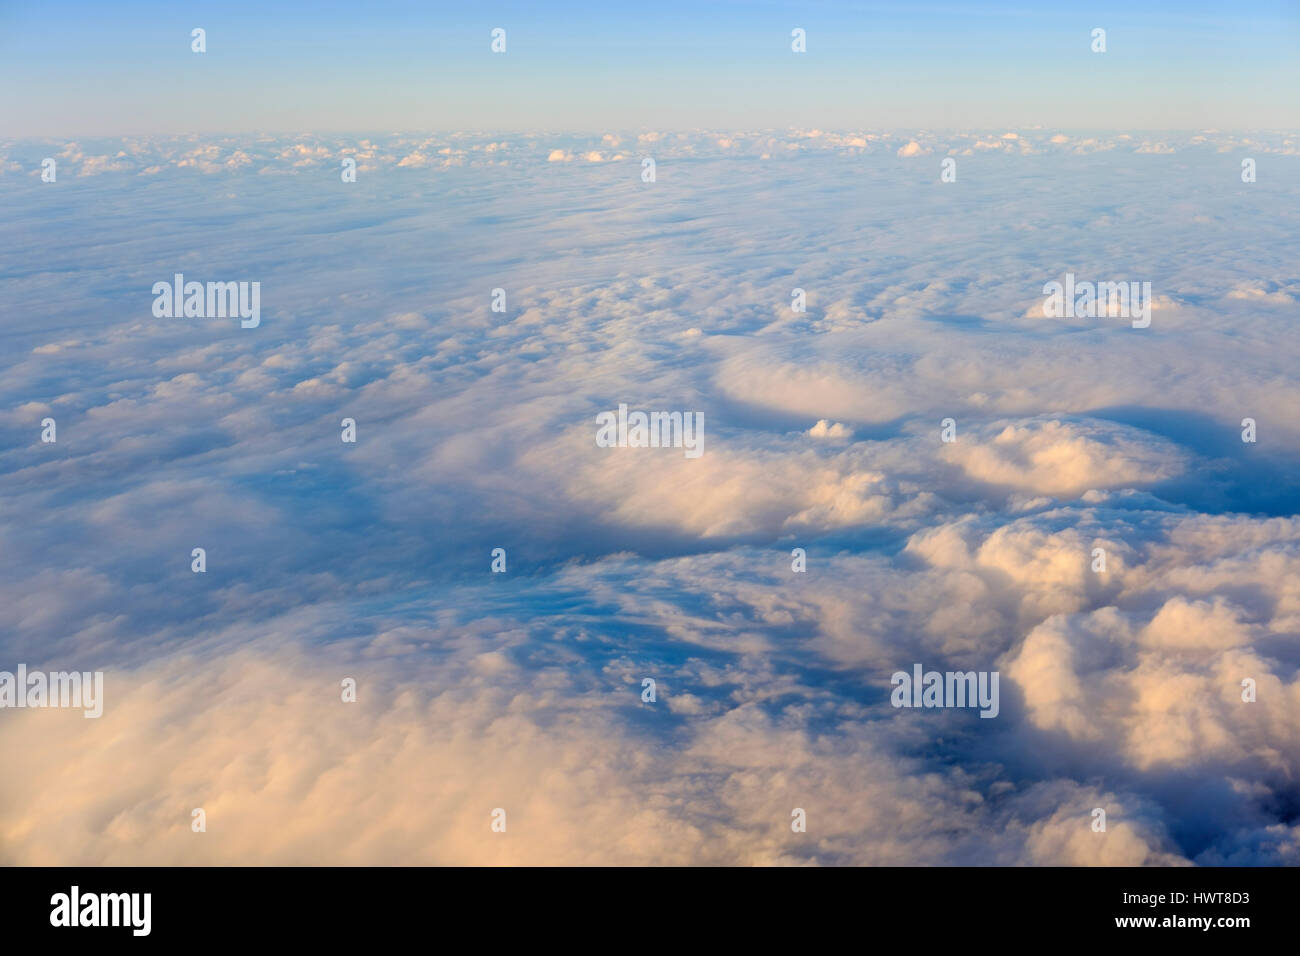 Clouds, cloud blanket over Gran Canaria, Canary Islands, Spain - Stock Image